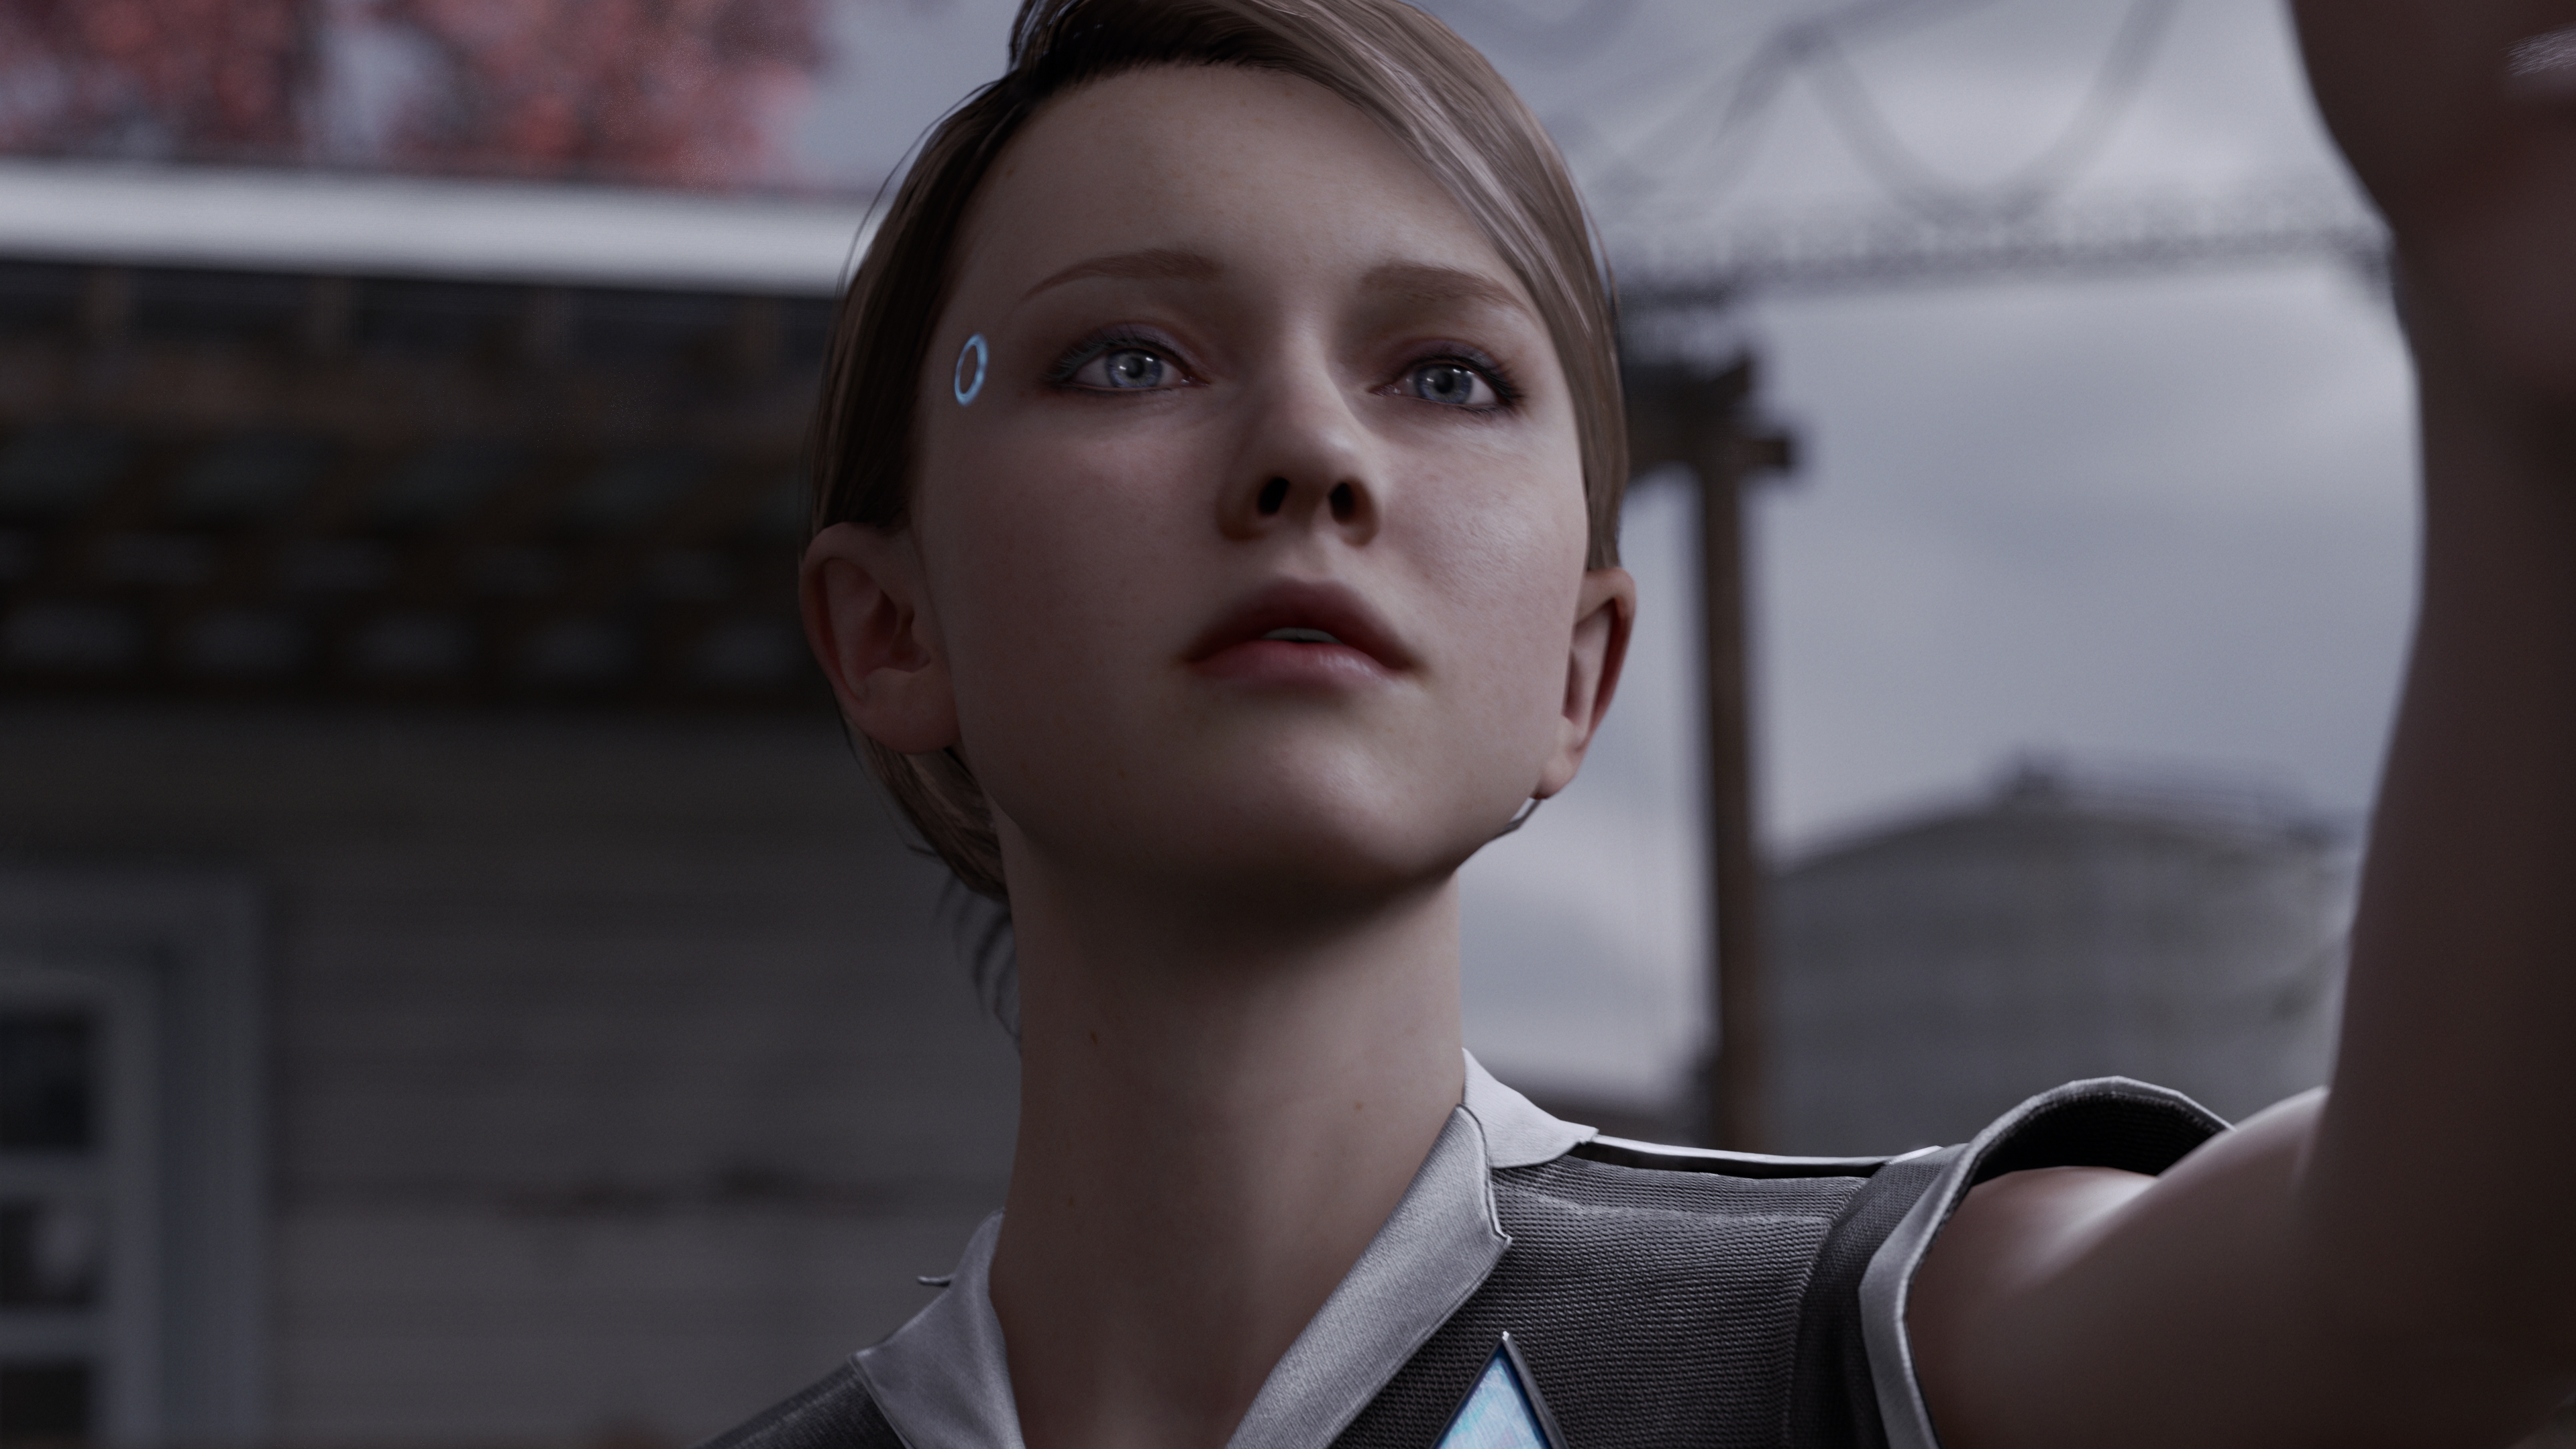 Detroit Become Human Wallpaper 1920x1080 Posted By Zoey Mercado